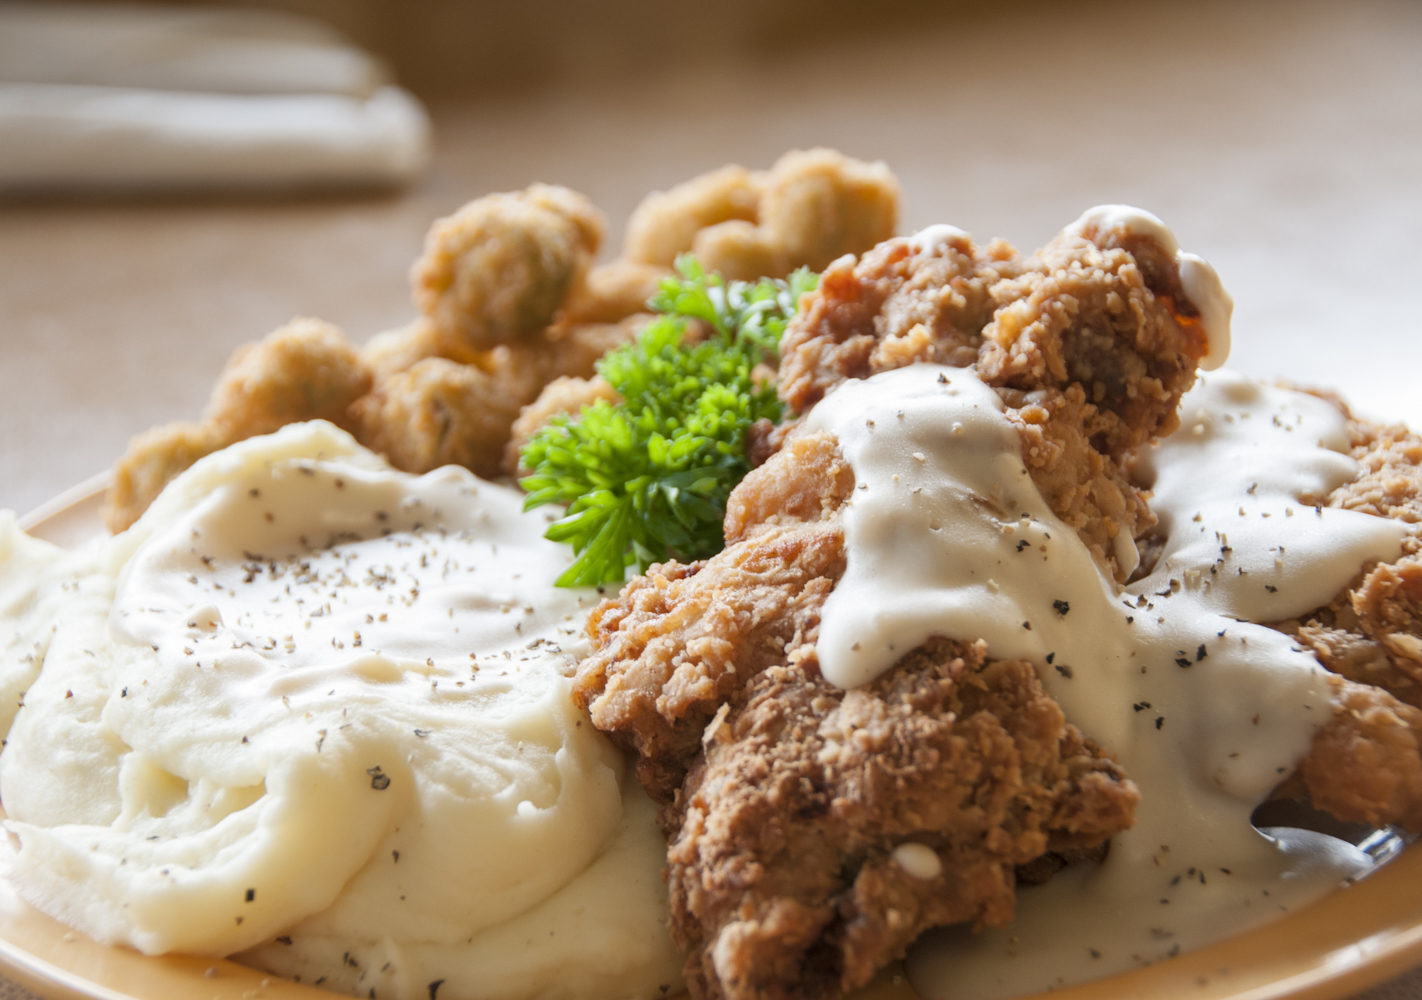 Southern comfort food at its best - mashed potatoes with country fried chicken and gravy on top.